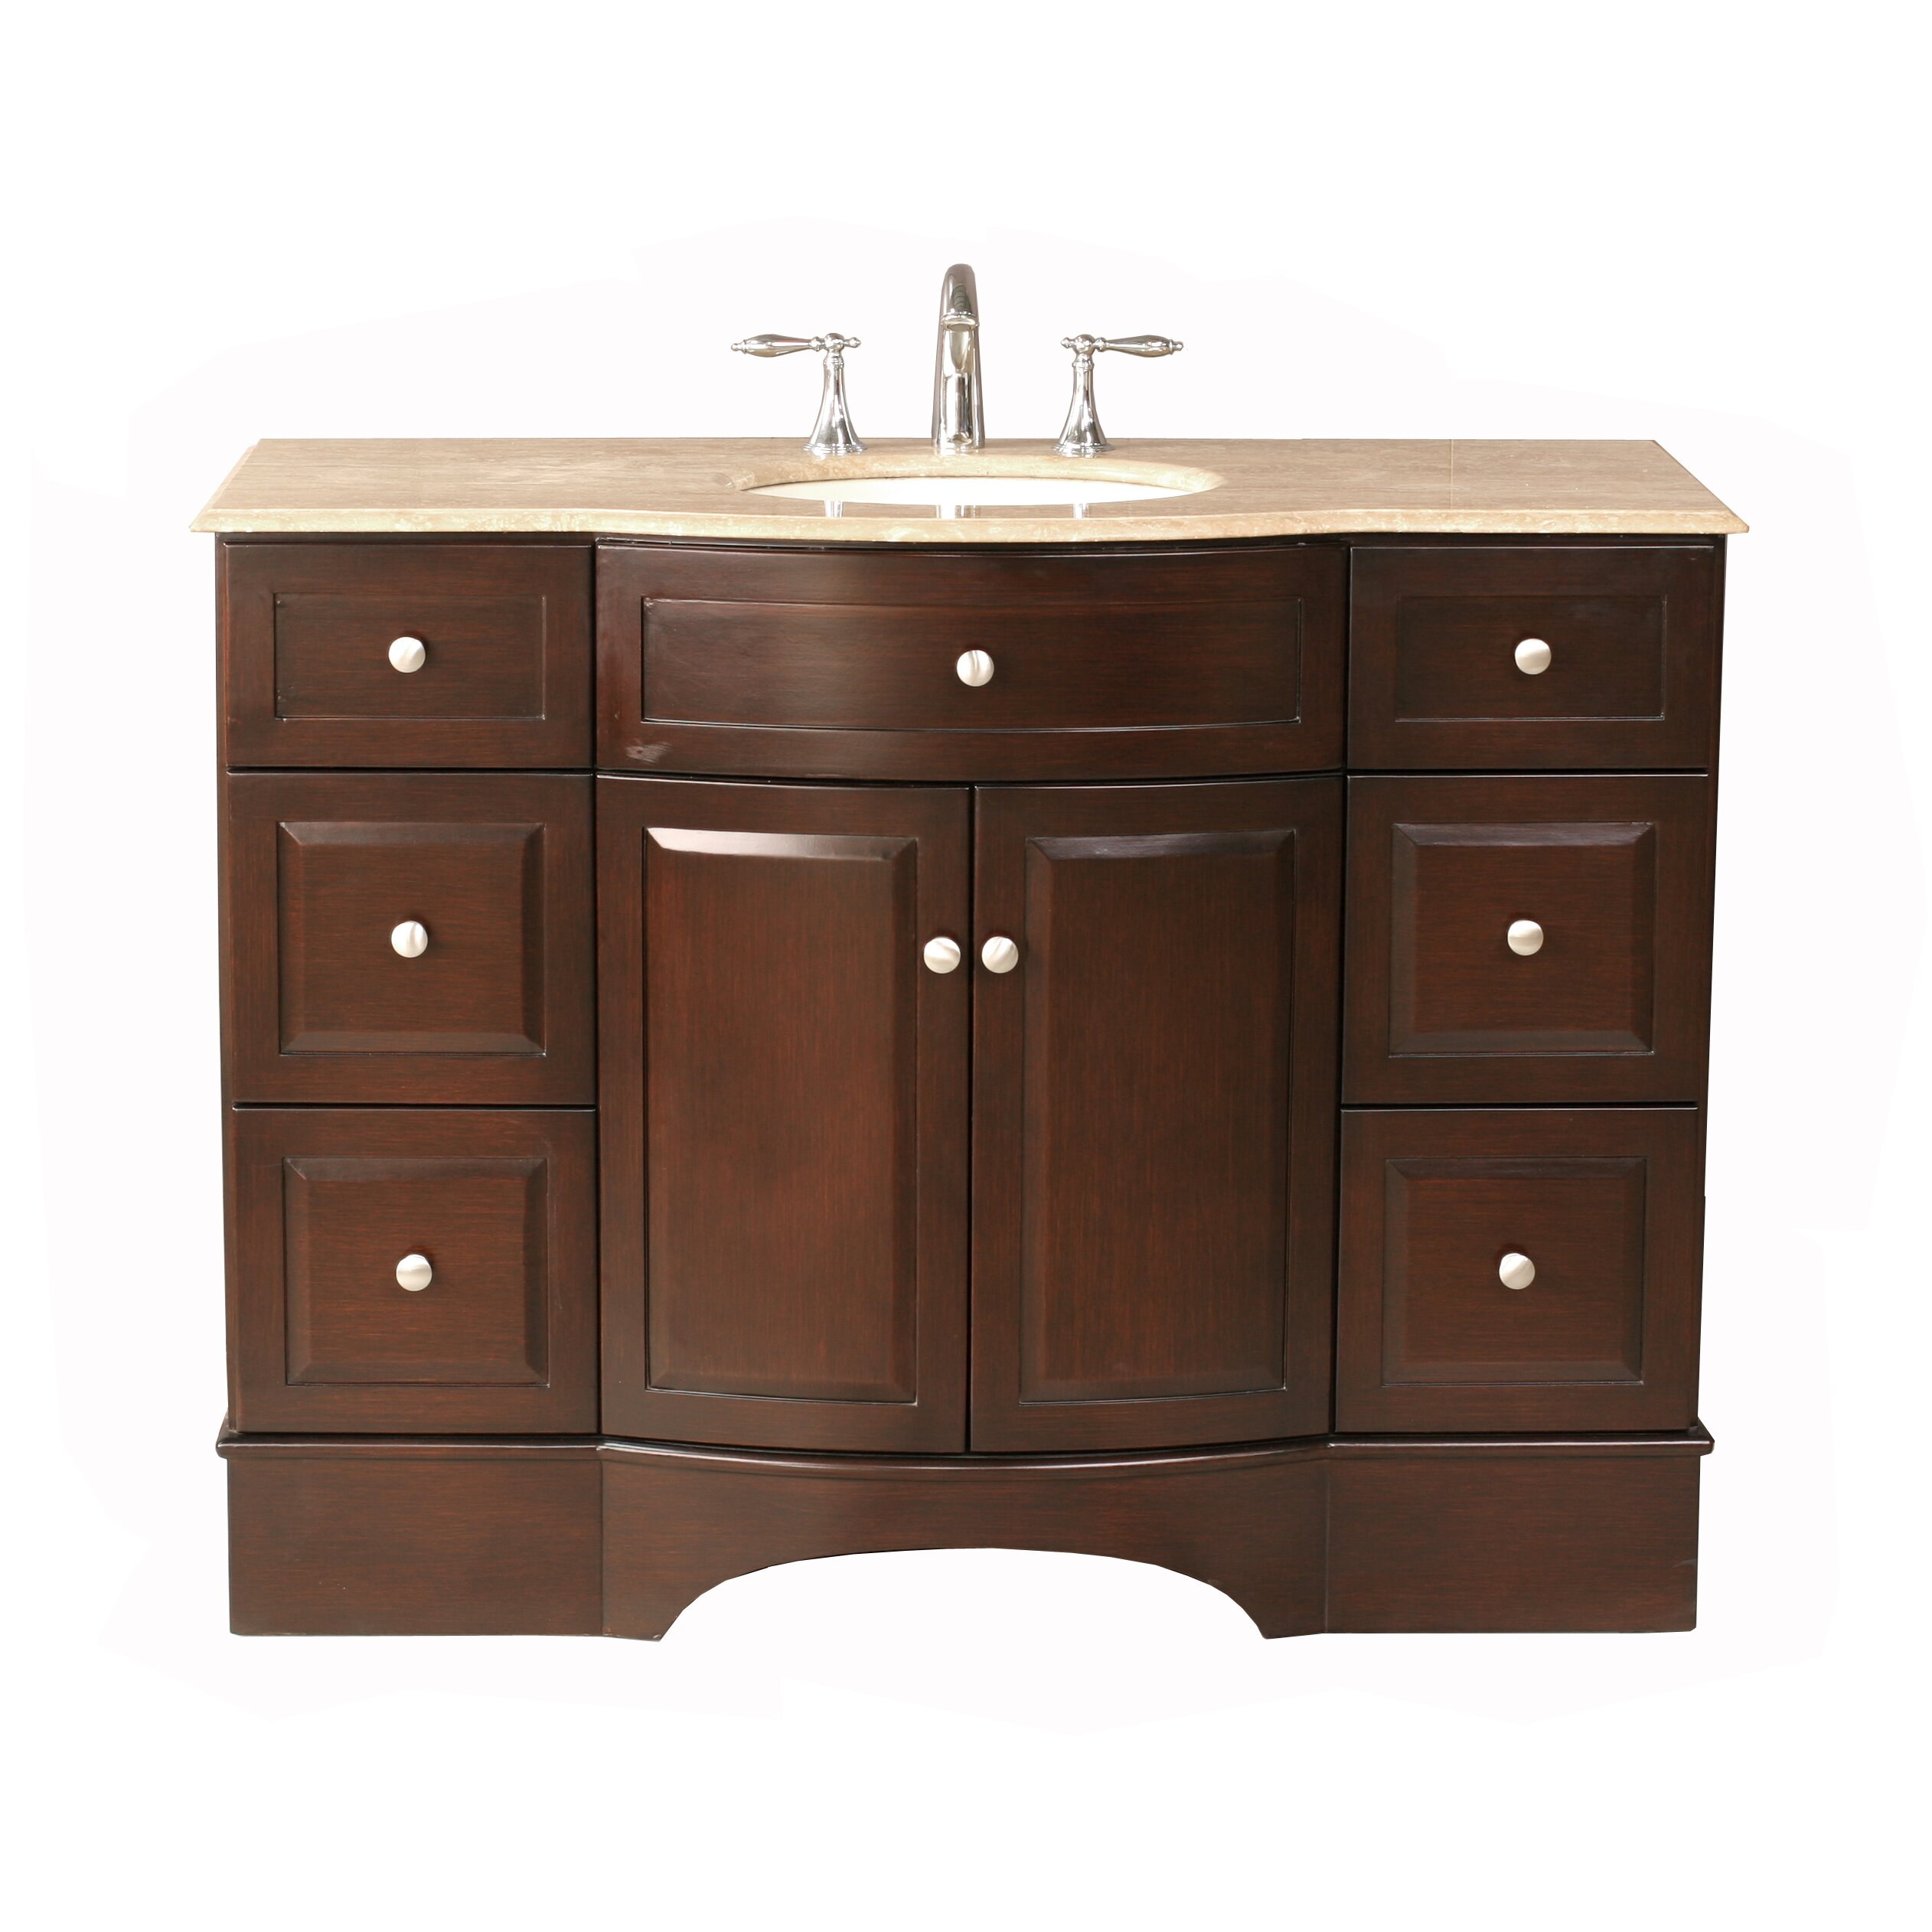 Dcor design dale 48 single bathroom vanity set with for 48 inch mirrored bathroom vanity